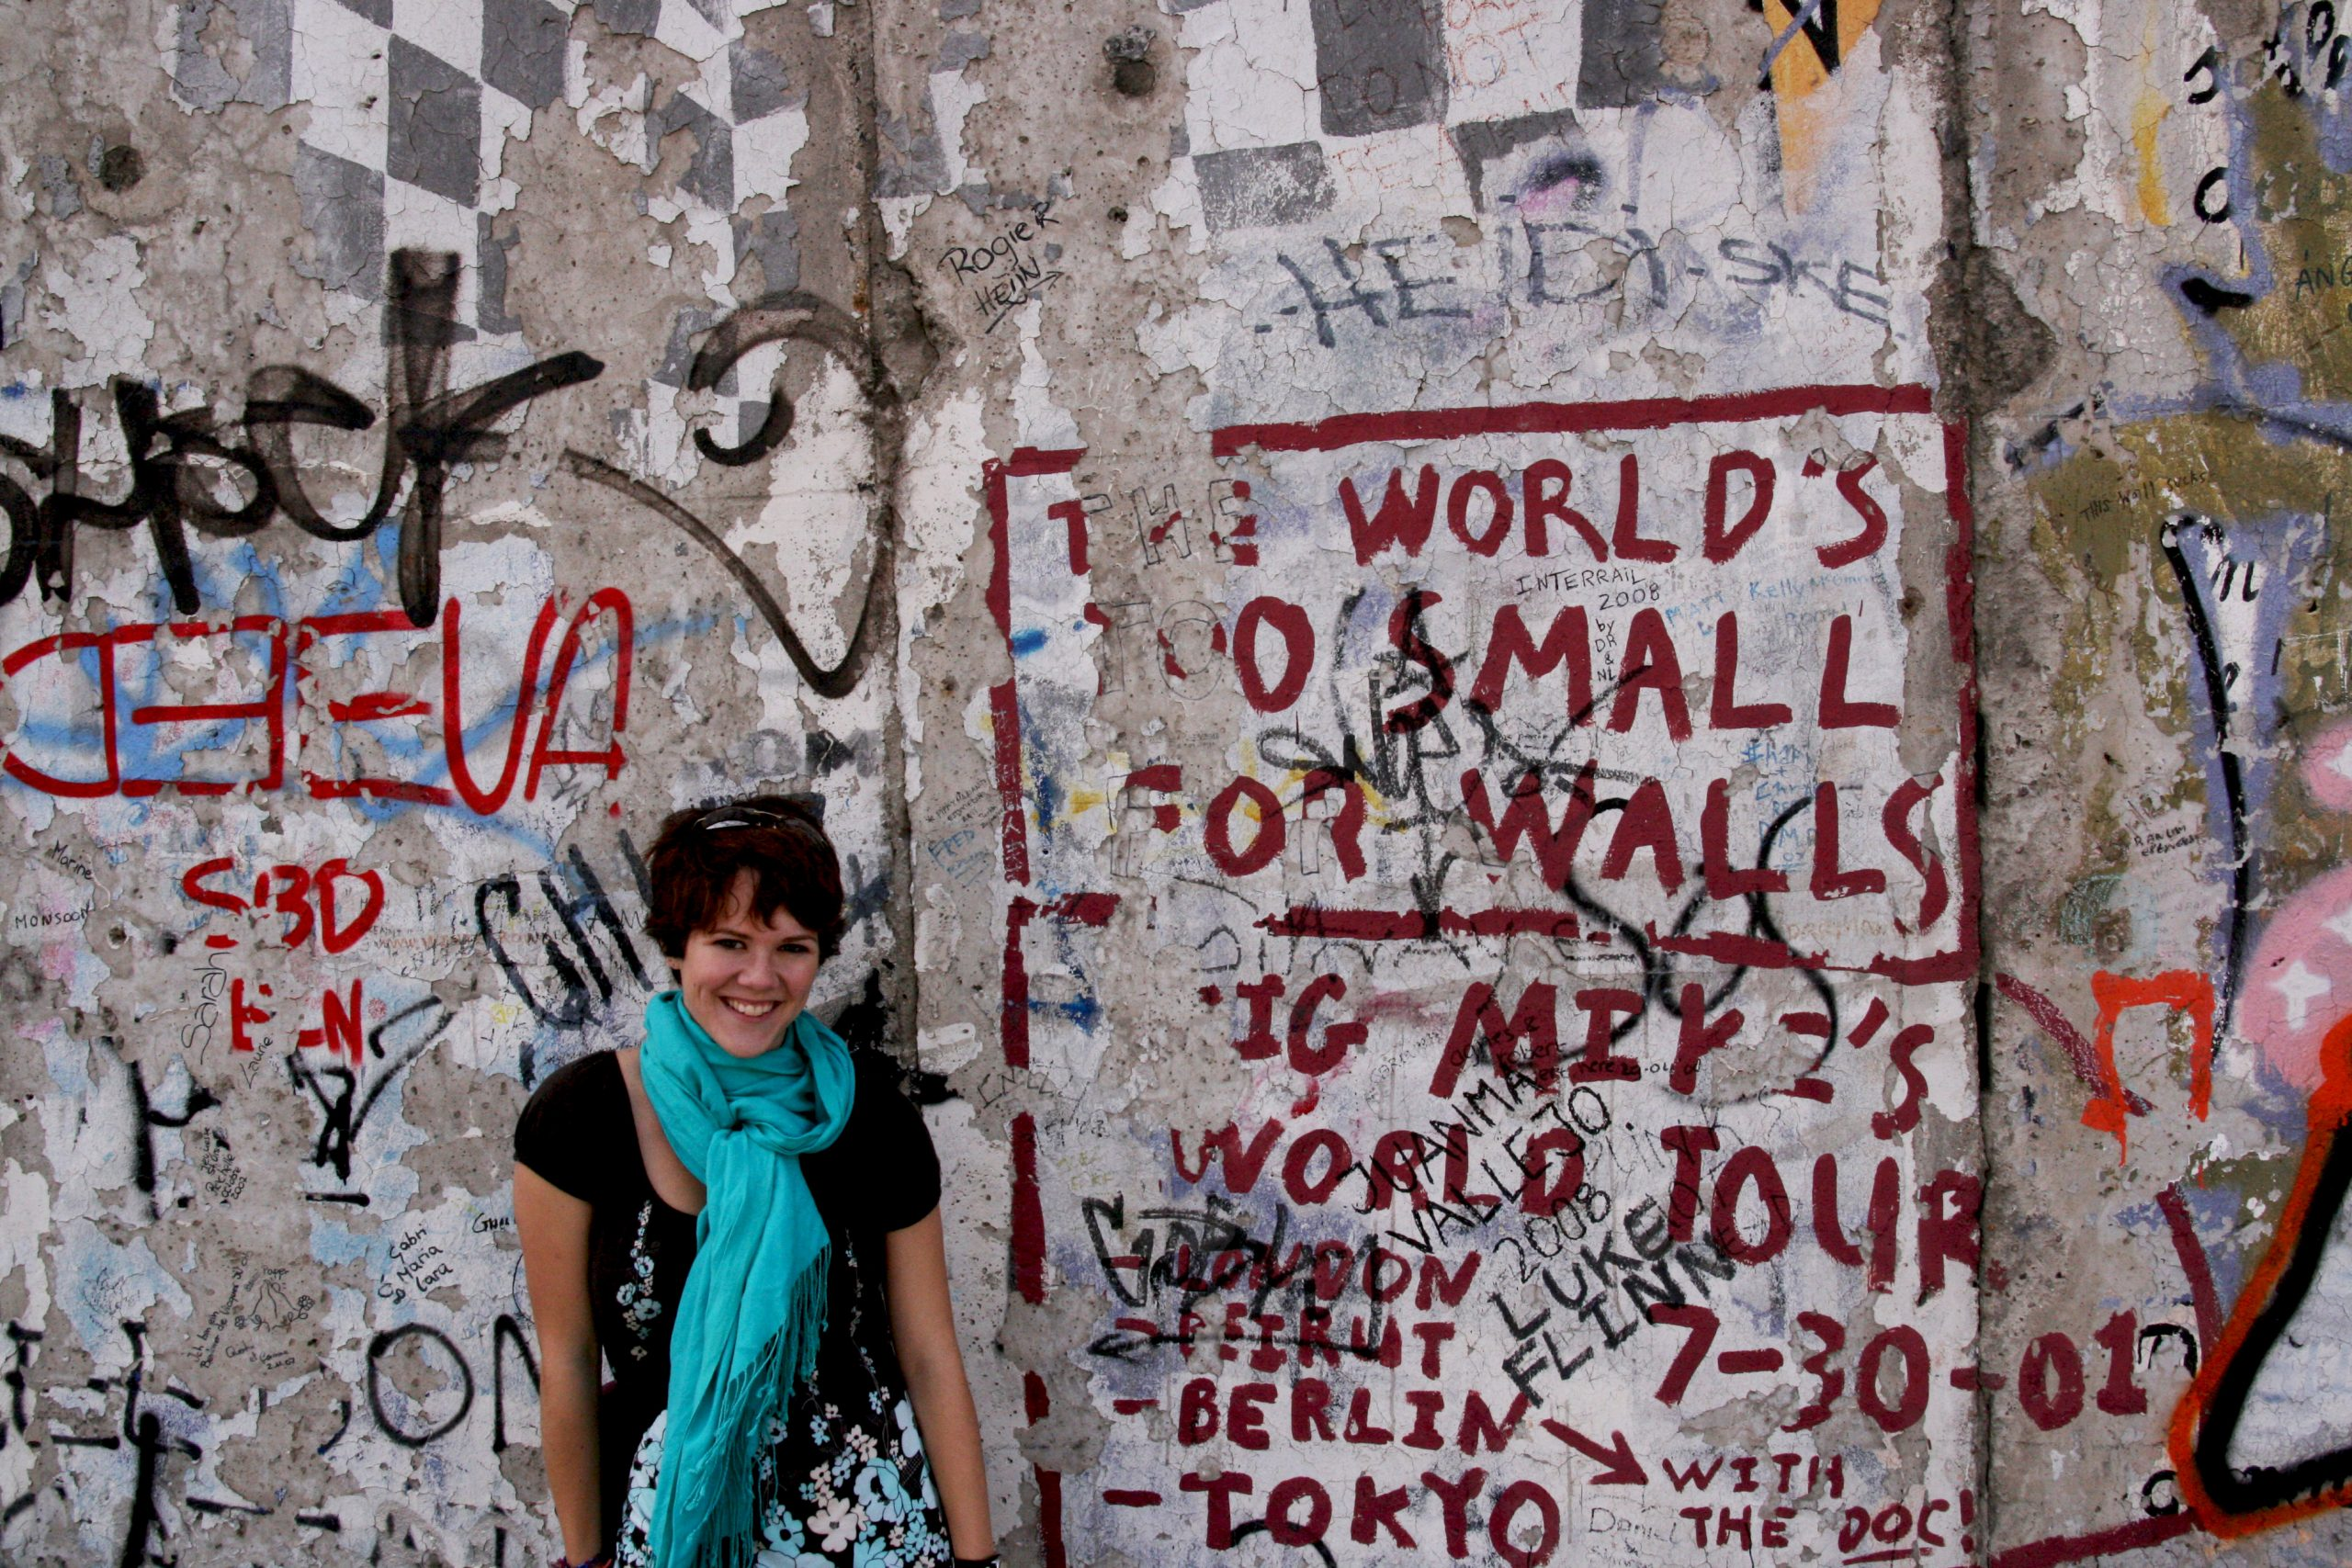 A woman stands in front of the eastside gallery in Berlin. The graffiti on the wall says The World's too small for walls.